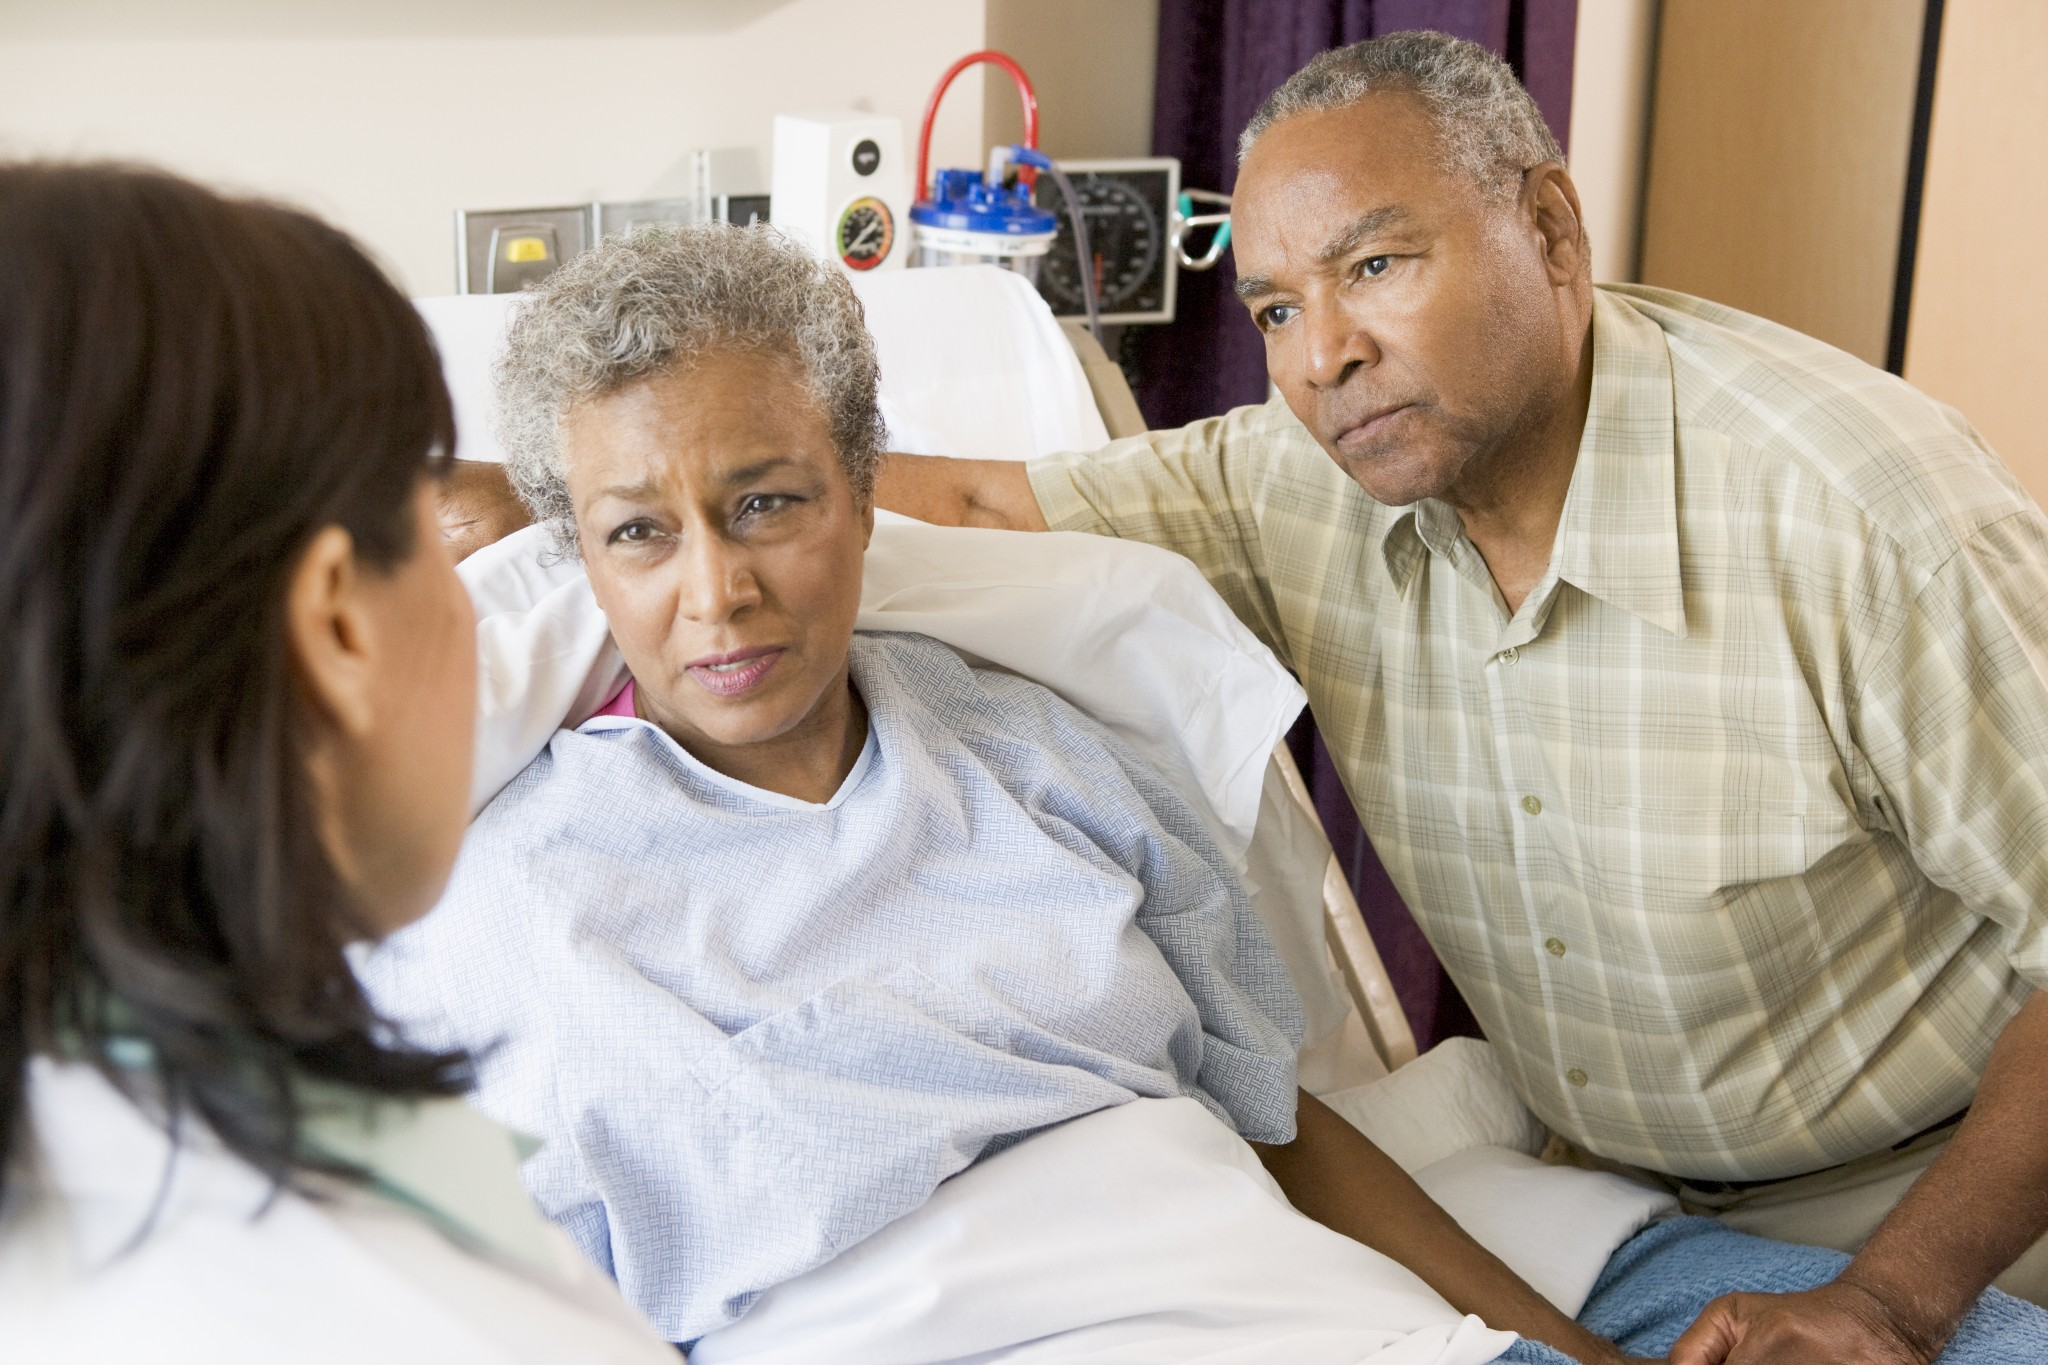 Readmission Risk for Seniors: Lack of Education about Chronic-Illness Care